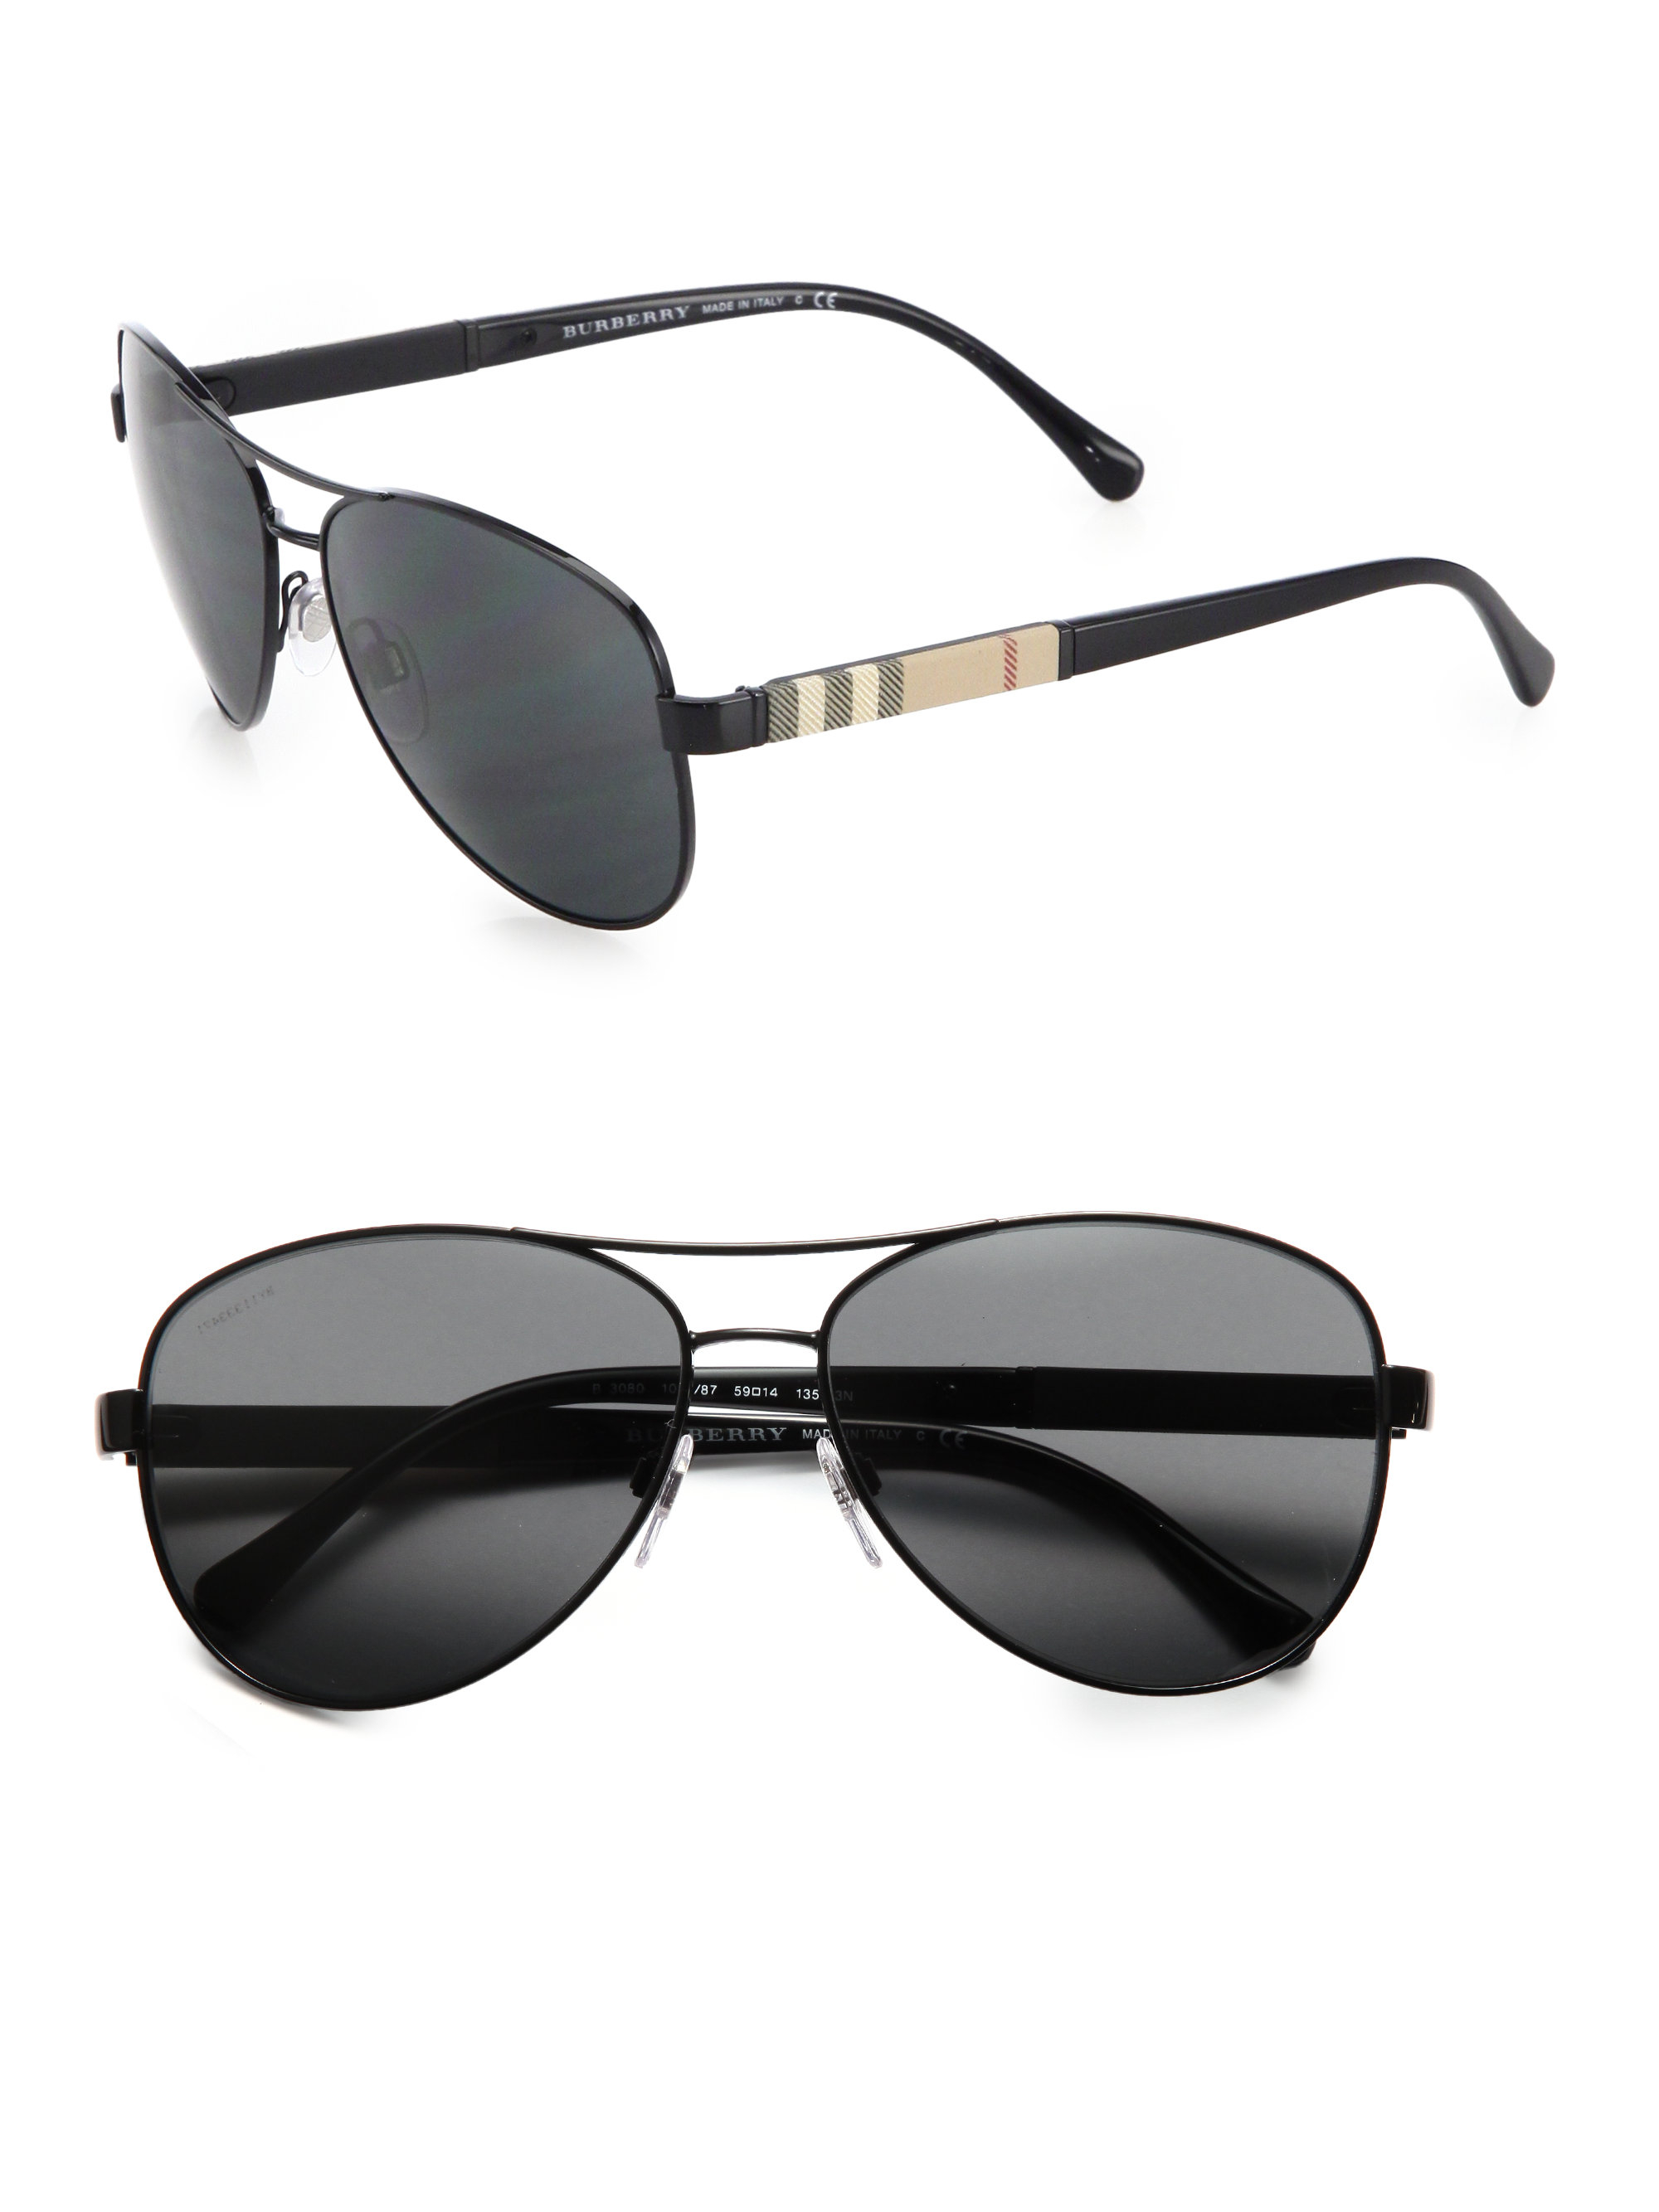 Best Eyeglass Frames Houston : Burberry Mens Aviator Sunglasses